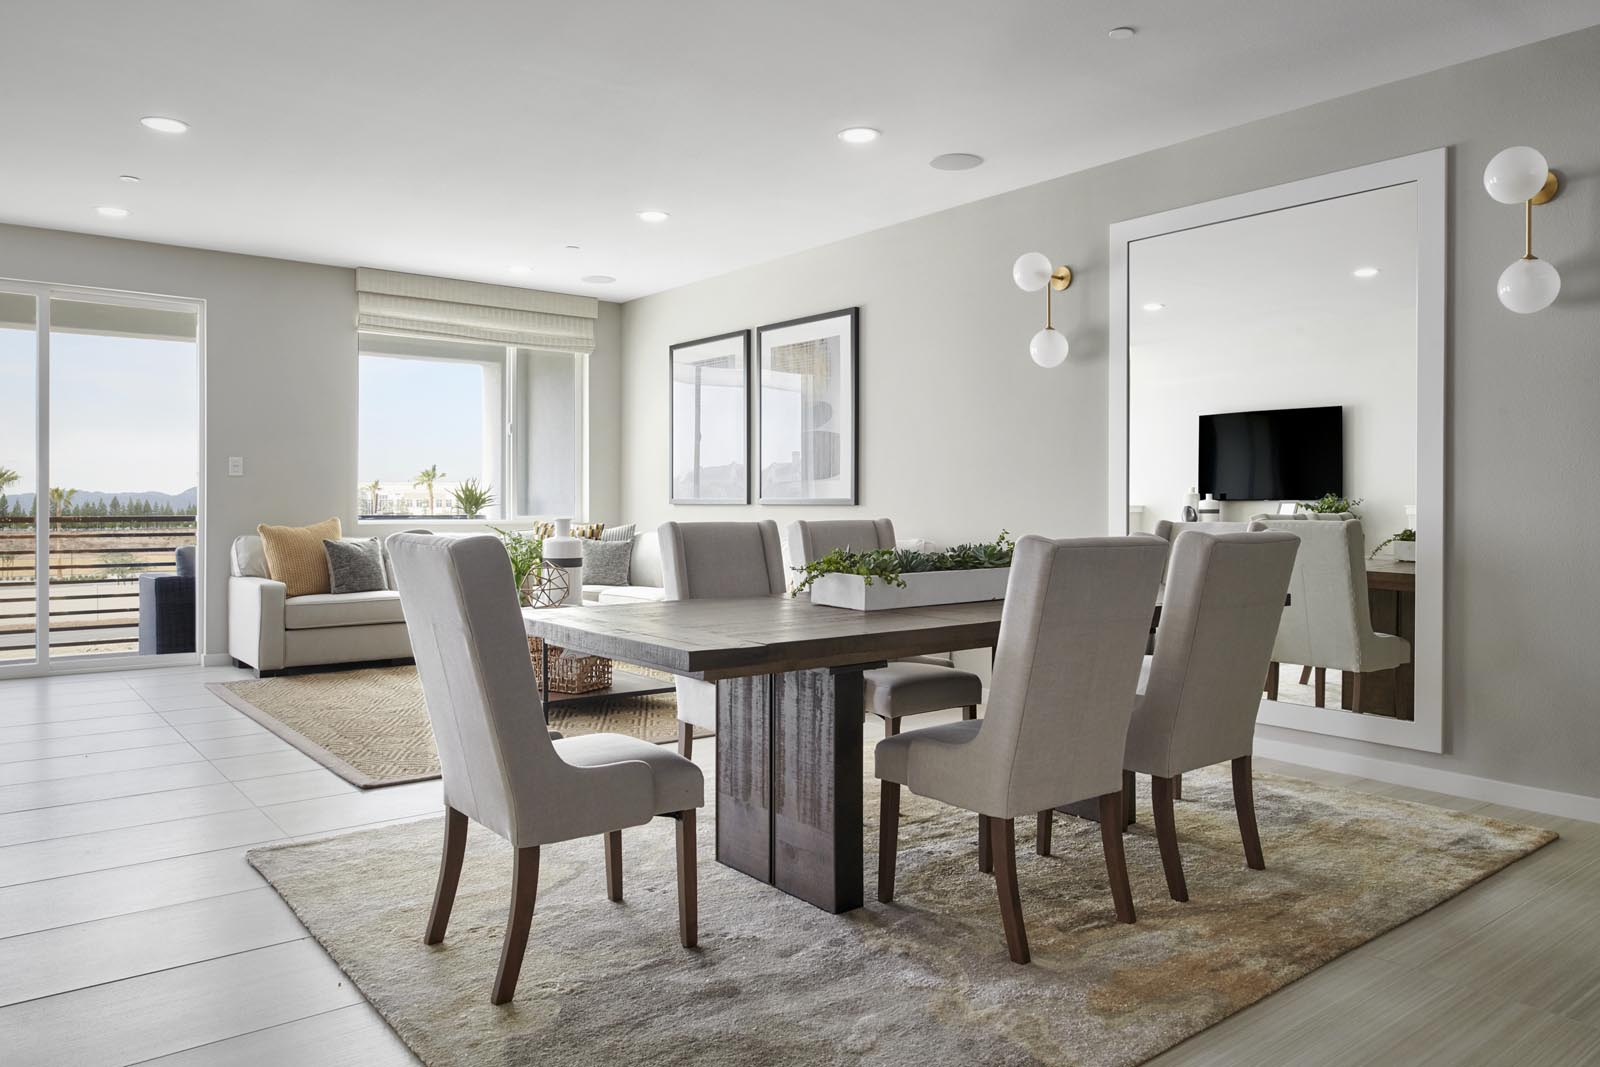 Dining Area | Residence 3 | Tempo | New Homes in Rancho Cucamonga, CA | Tri Pointe Homes